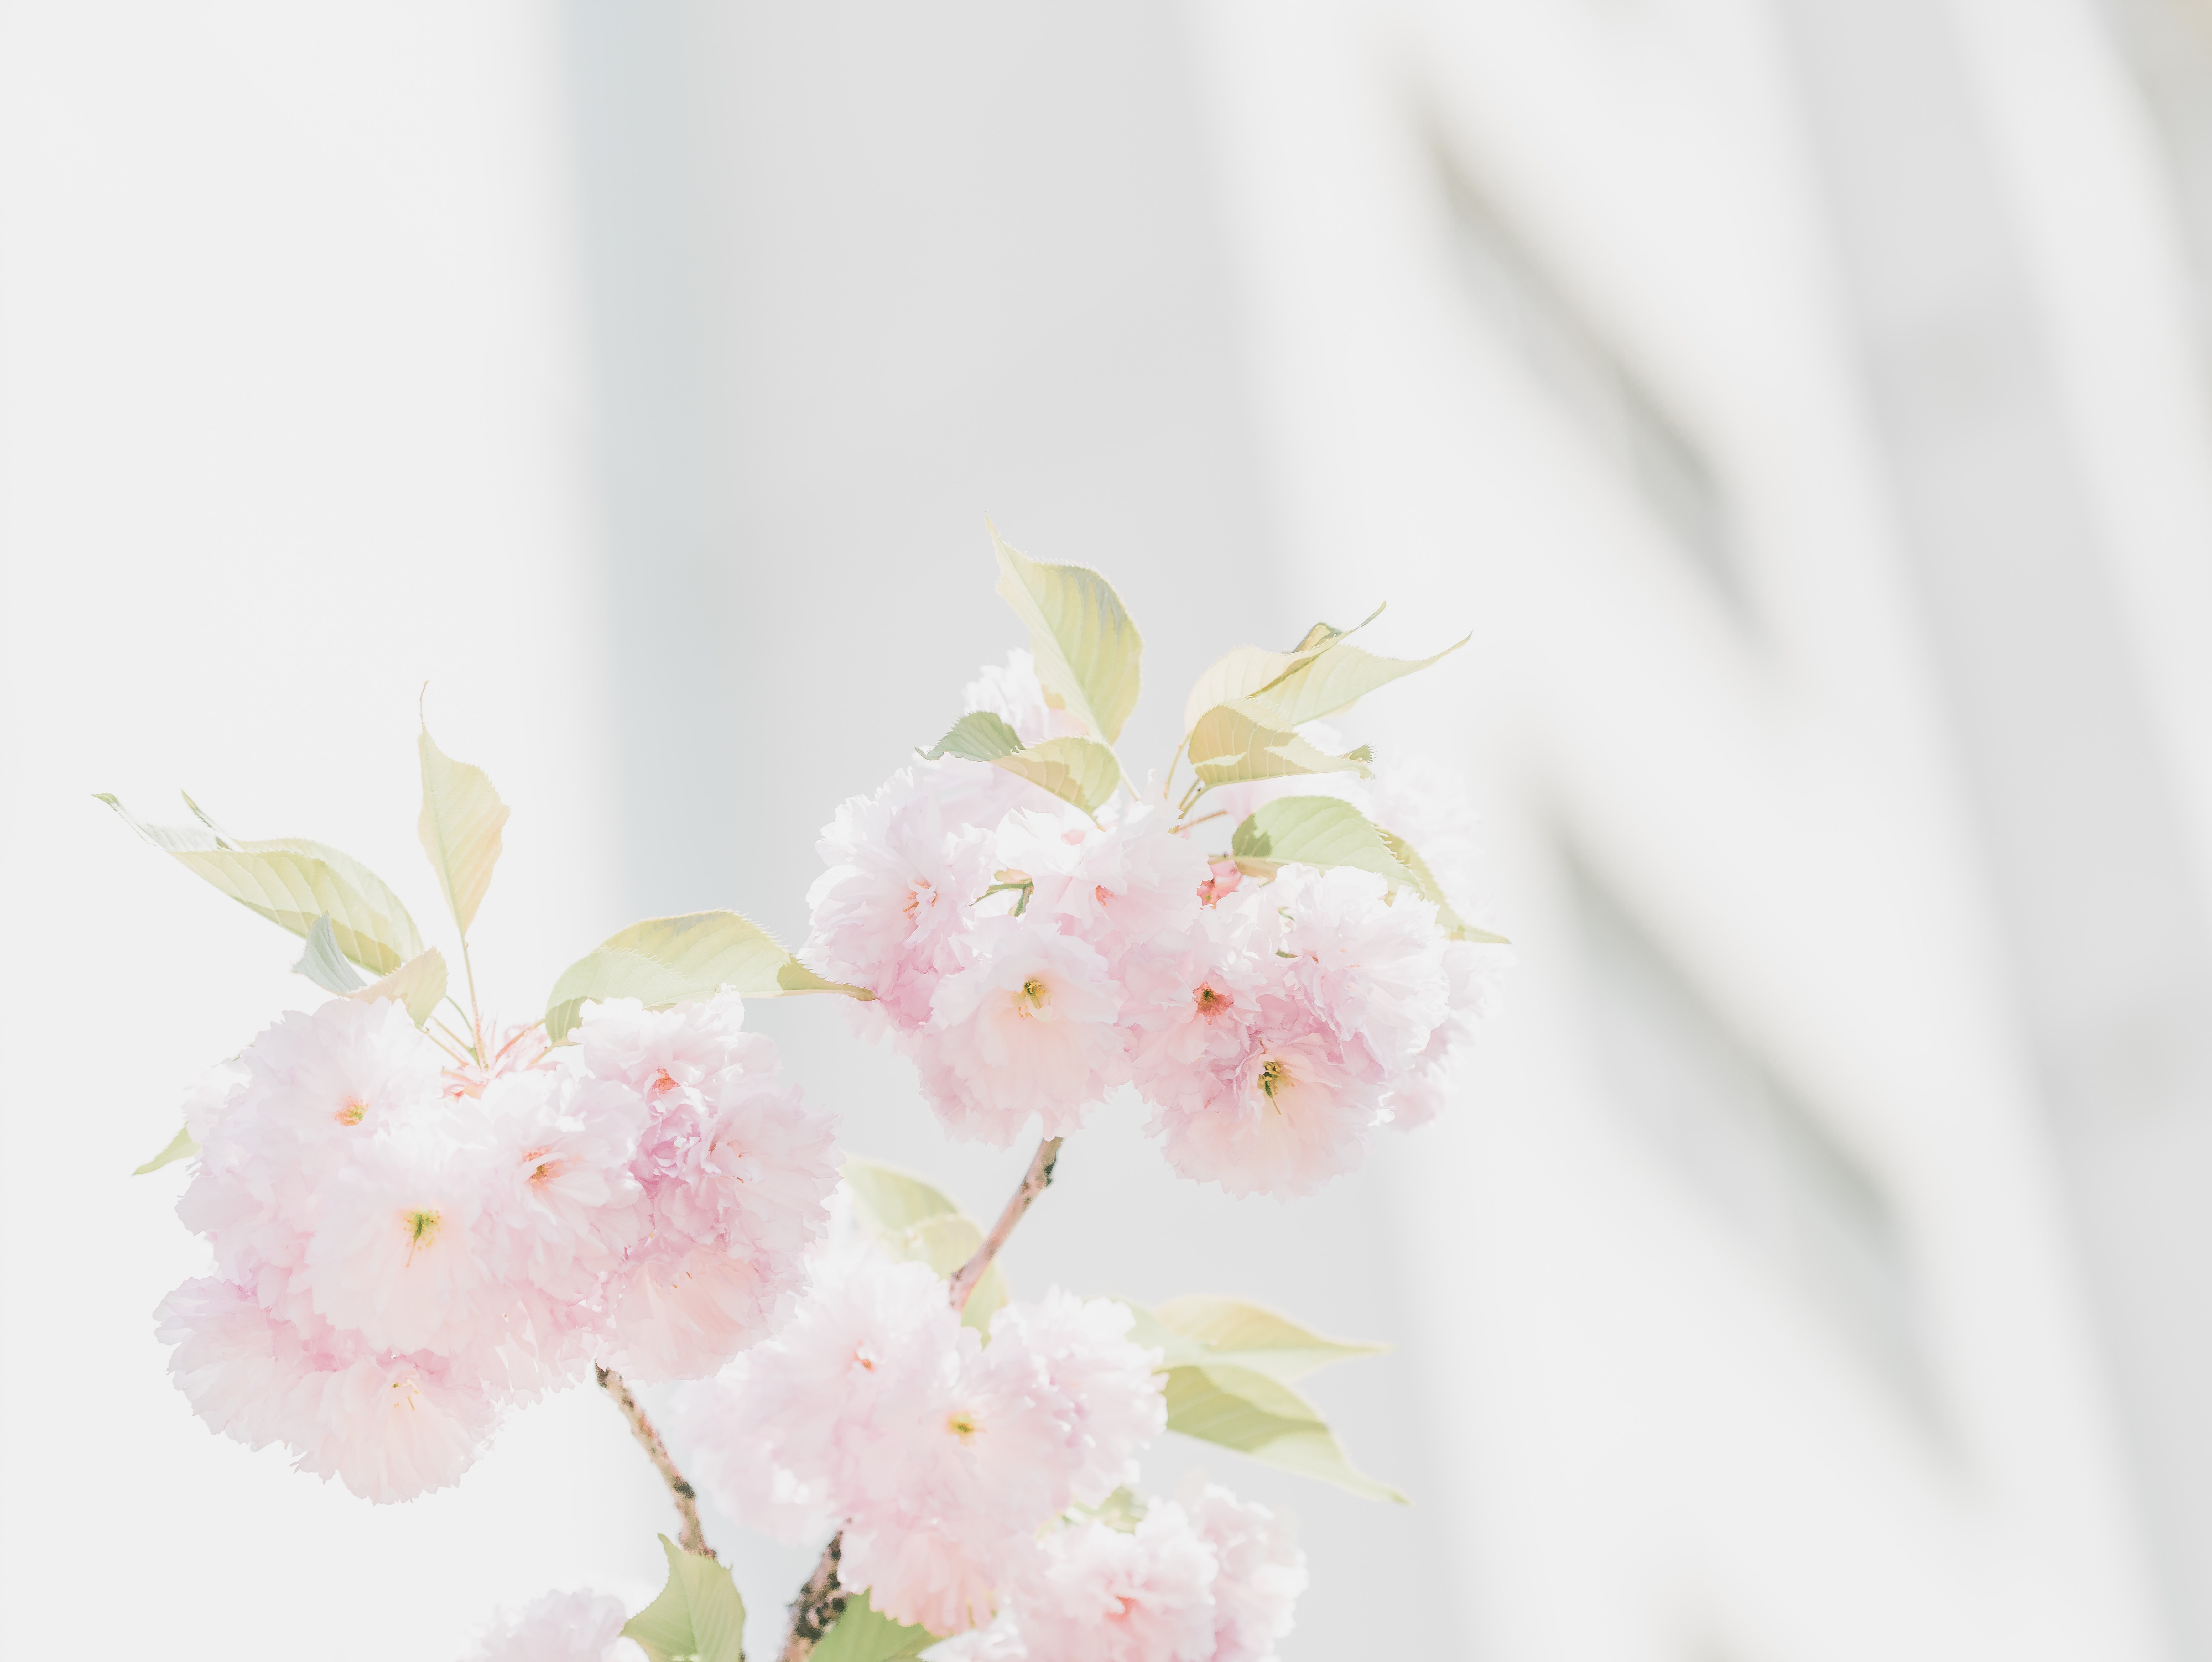 pink petaled flowers on white background